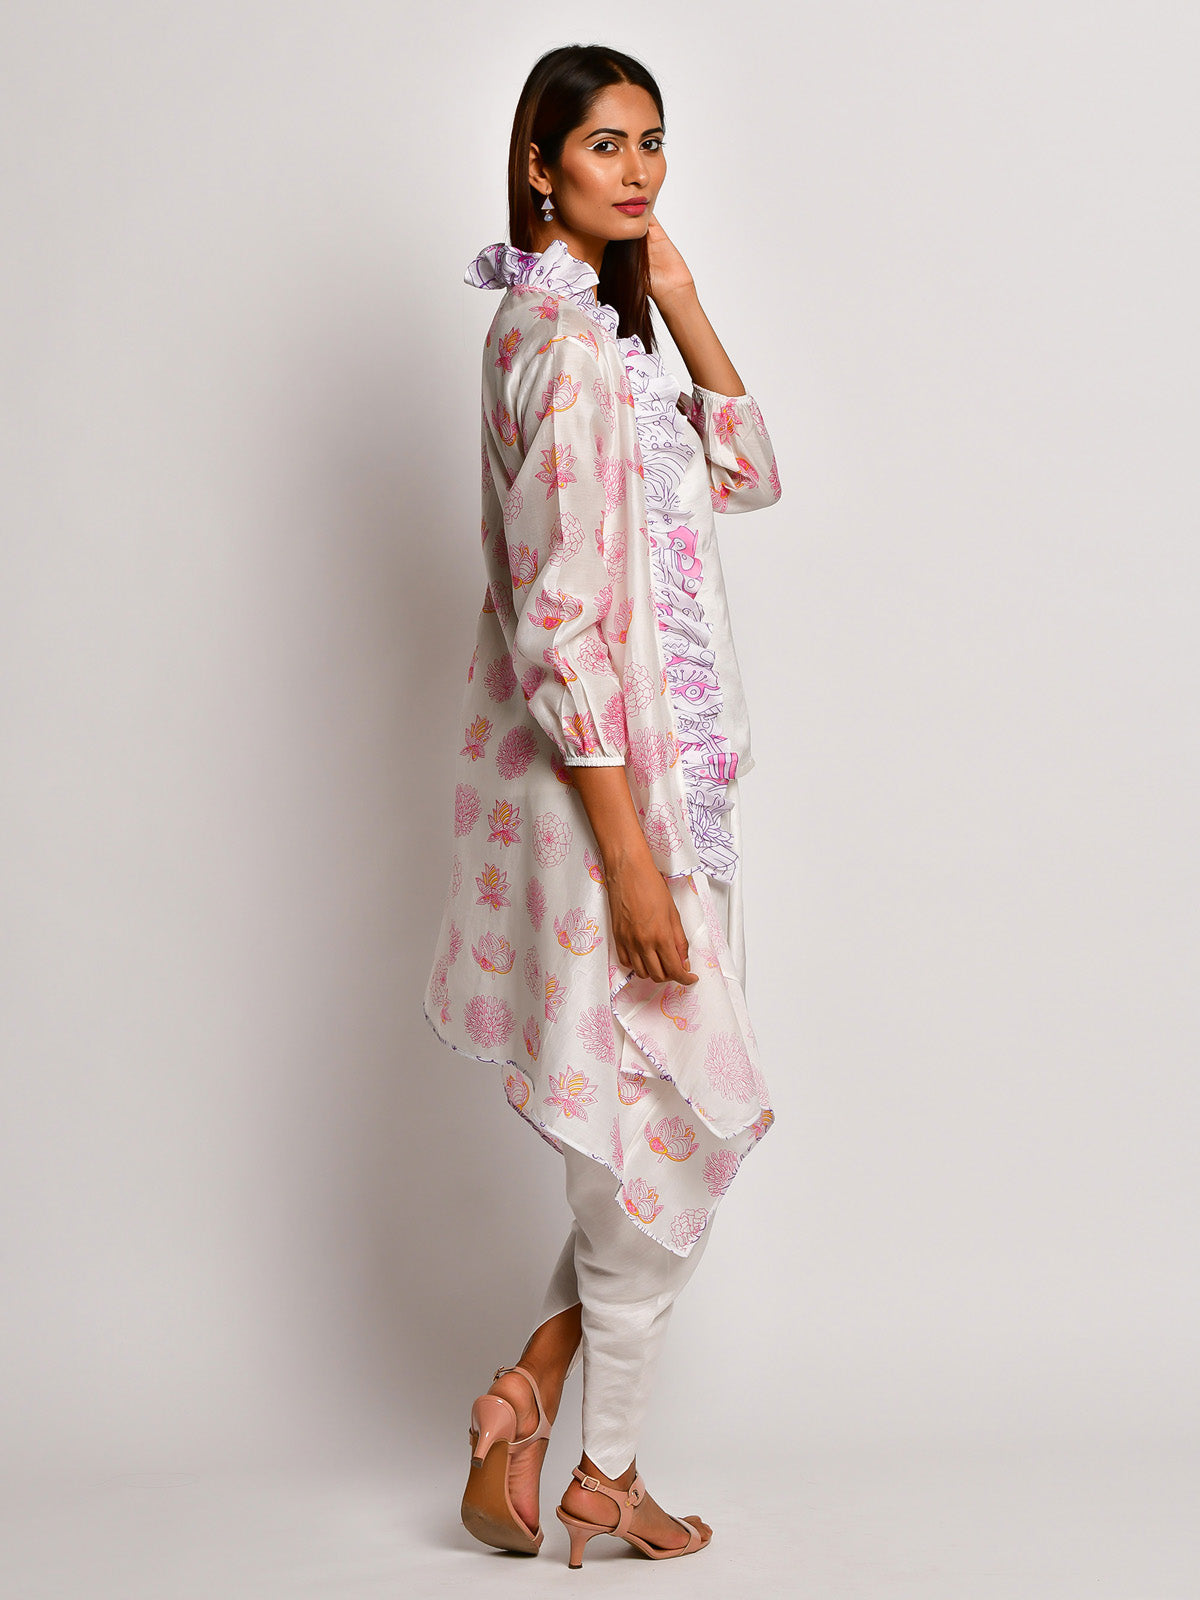 BLOOM PINK FLORAL CHANDERI JACKET WITH CAMISOLE AND DHOTI PANTS